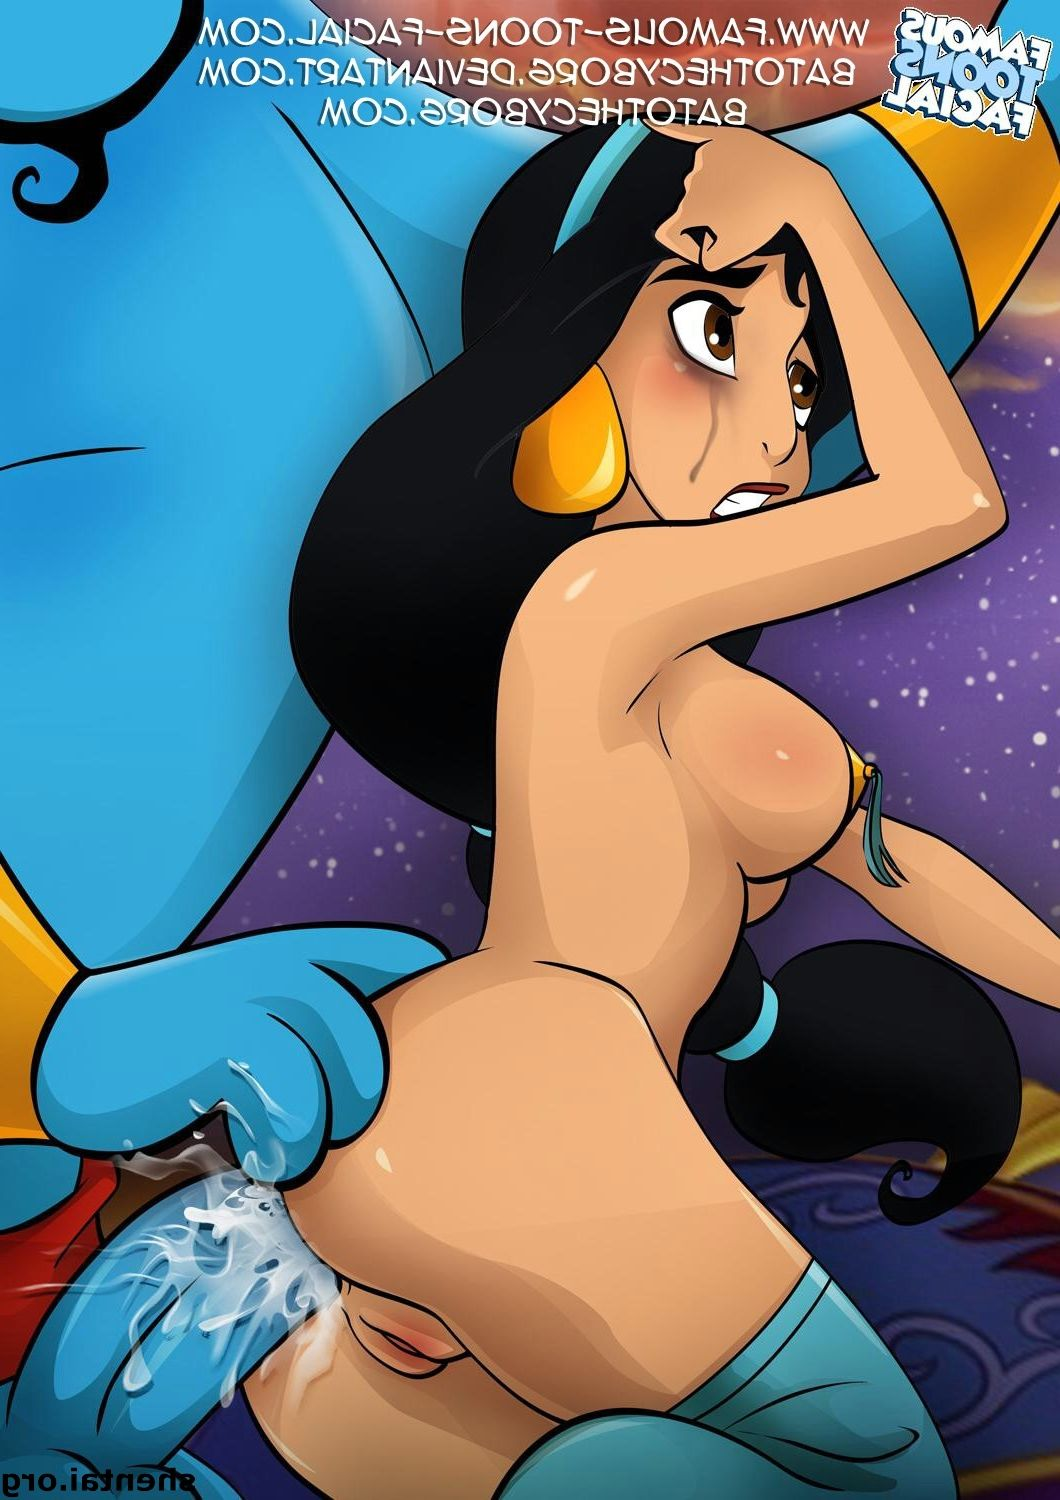 aladdin-artwork-1 image_26351.jpg